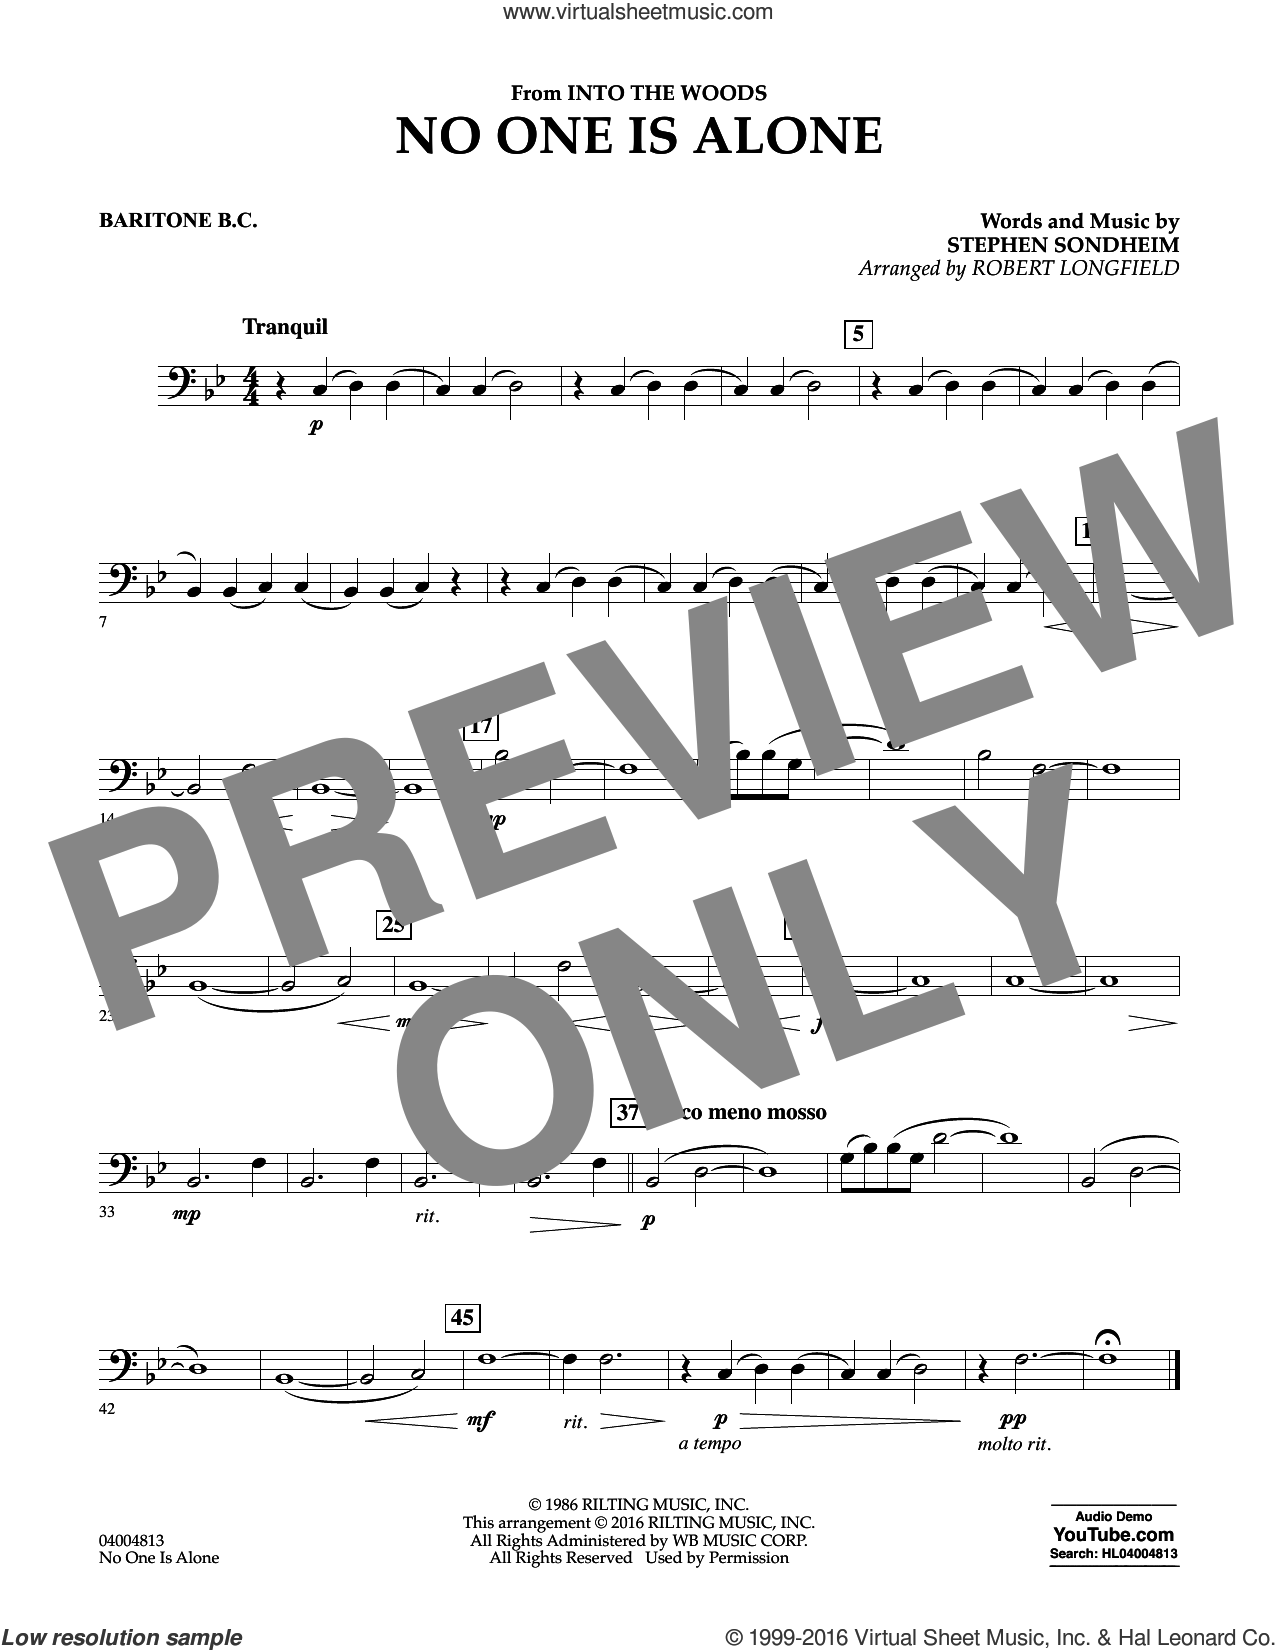 No One Is Alone sheet music for concert band (baritone b.c.) by Stephen Sondheim and Robert Longfield, intermediate skill level